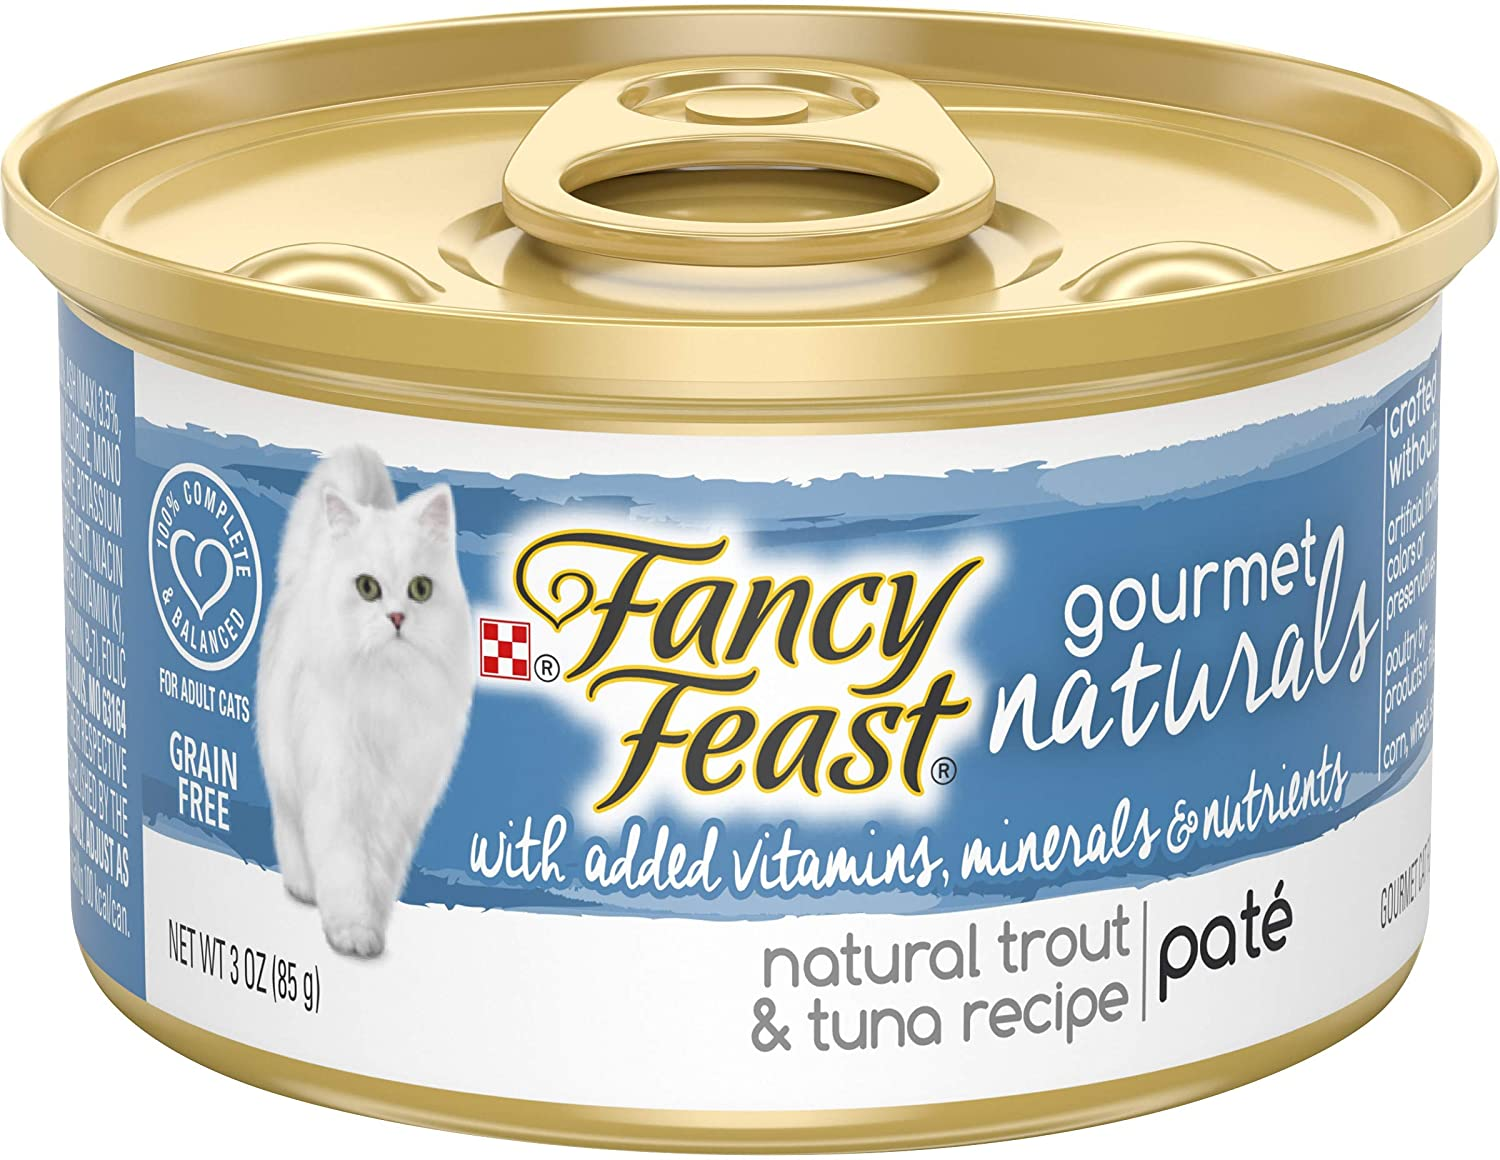 Purina Fancy Feast Gourmet Naturals Grain Free Pate Adult Canned Wet Cat Food